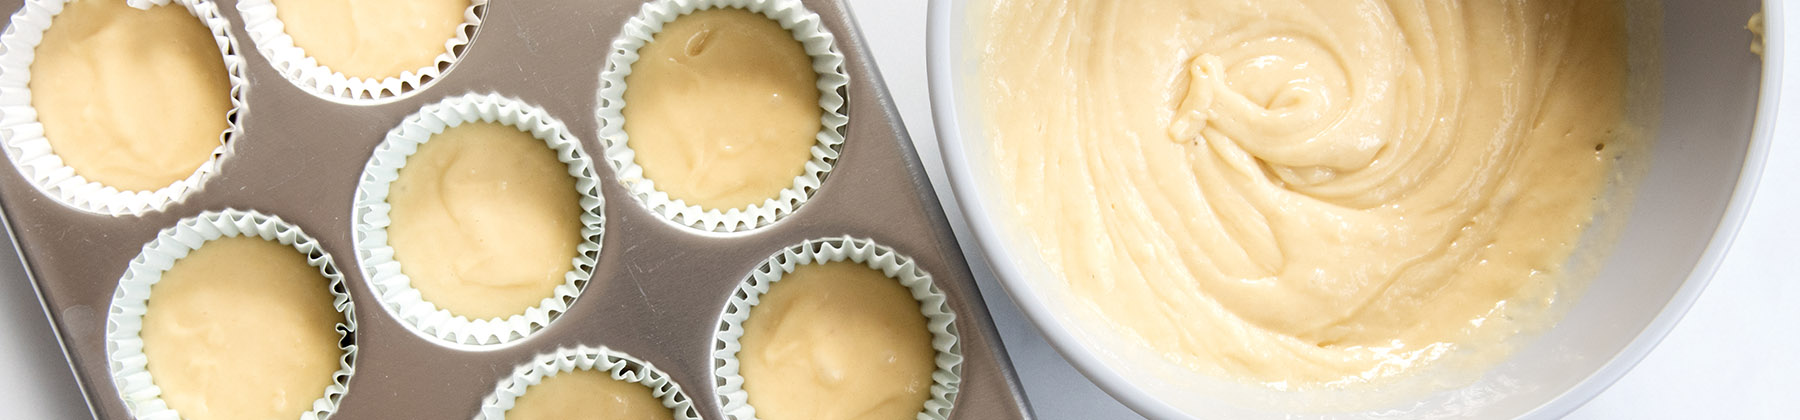 Photo of muffin batter in a muffin pan.